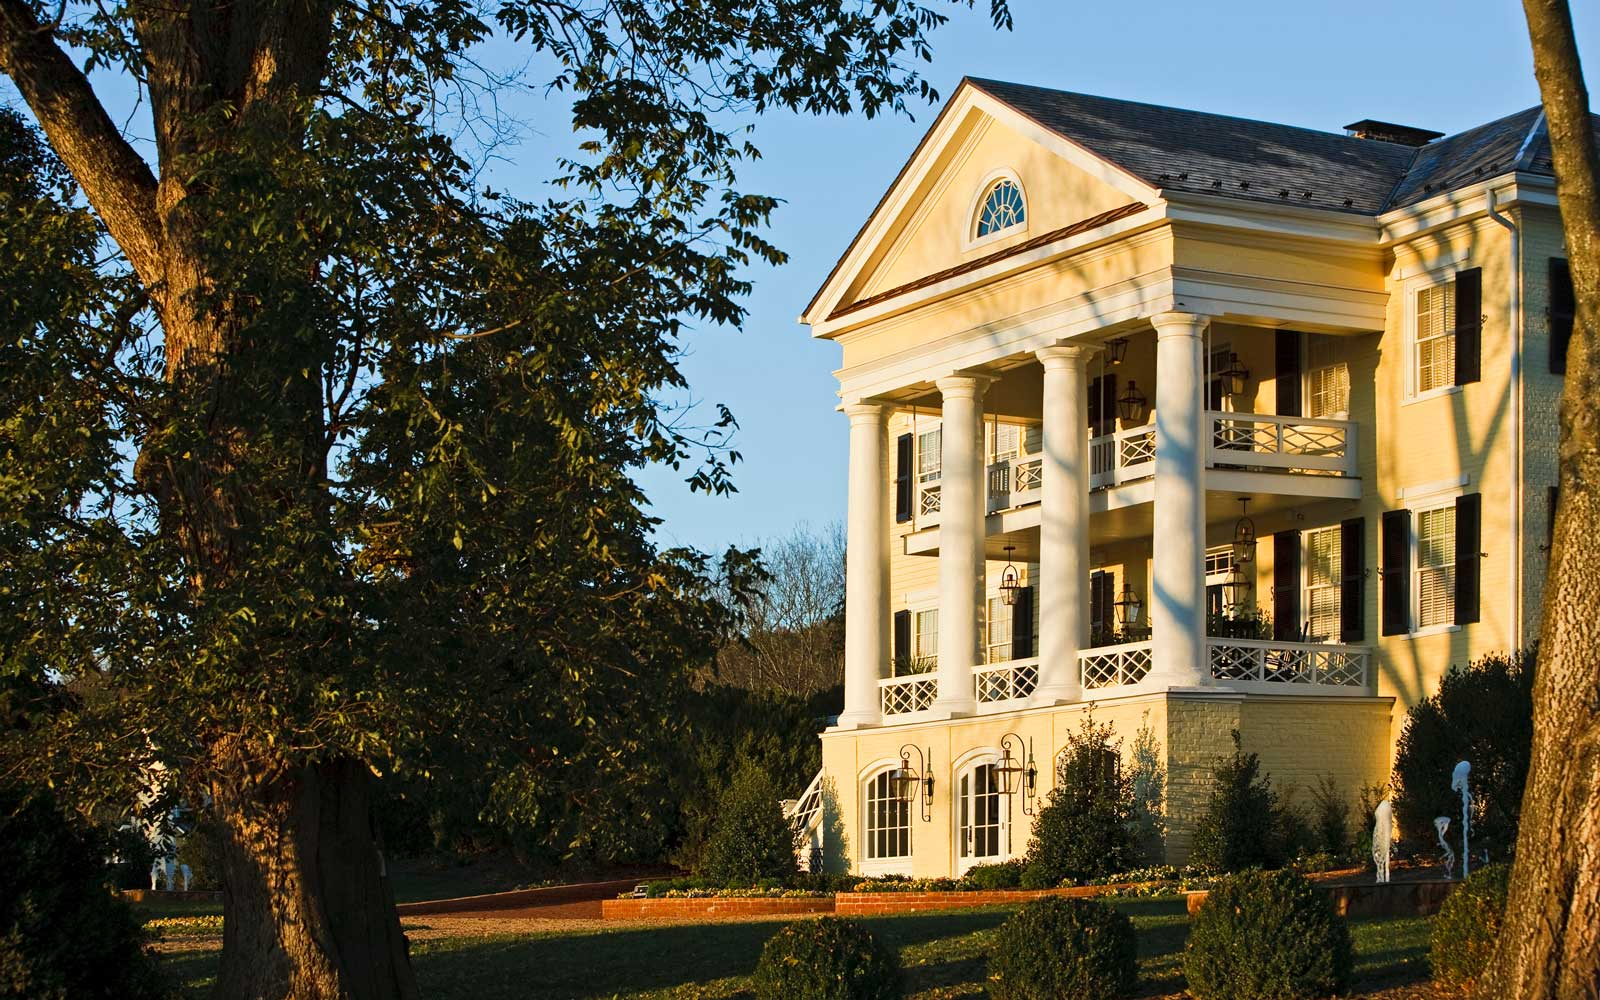 Enjoy 30% off Stays at This Charming Boutique Hotel in Virginia's Wine Country